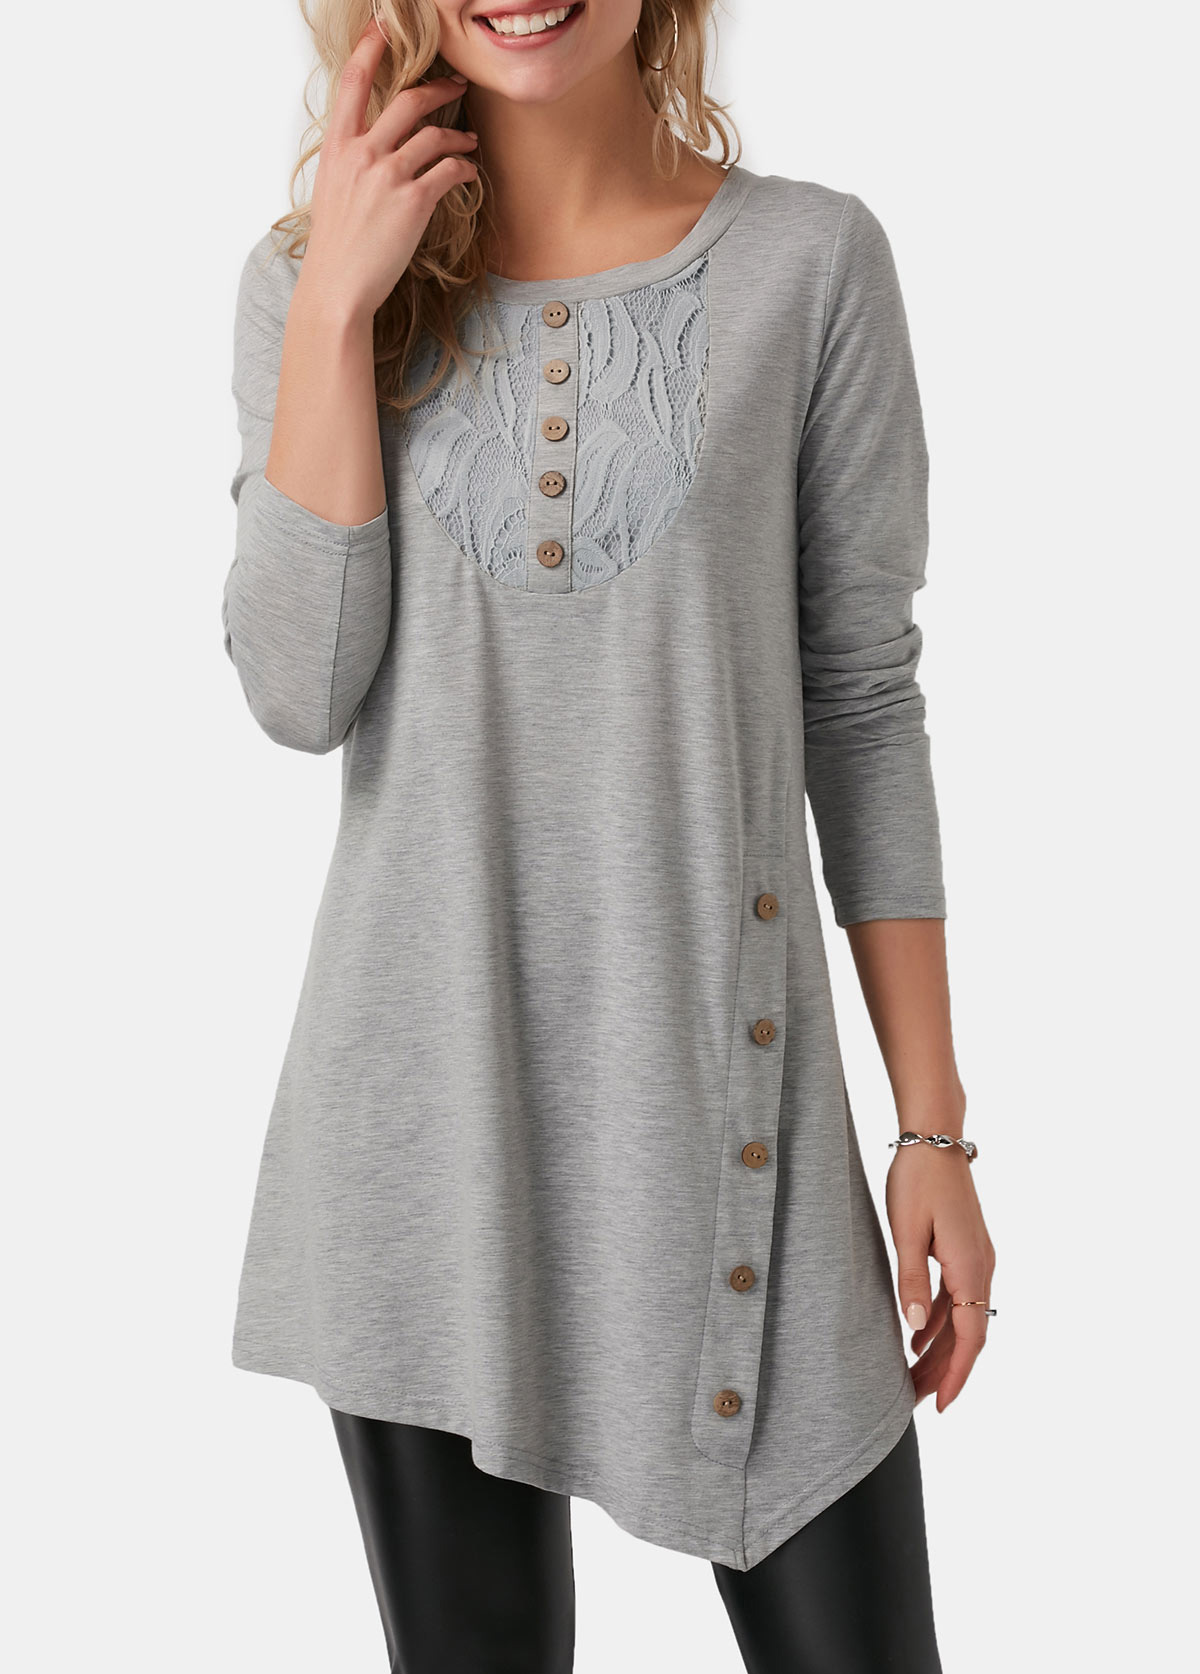 Asymmetric Hem Button Detail Light Grey T Shirt